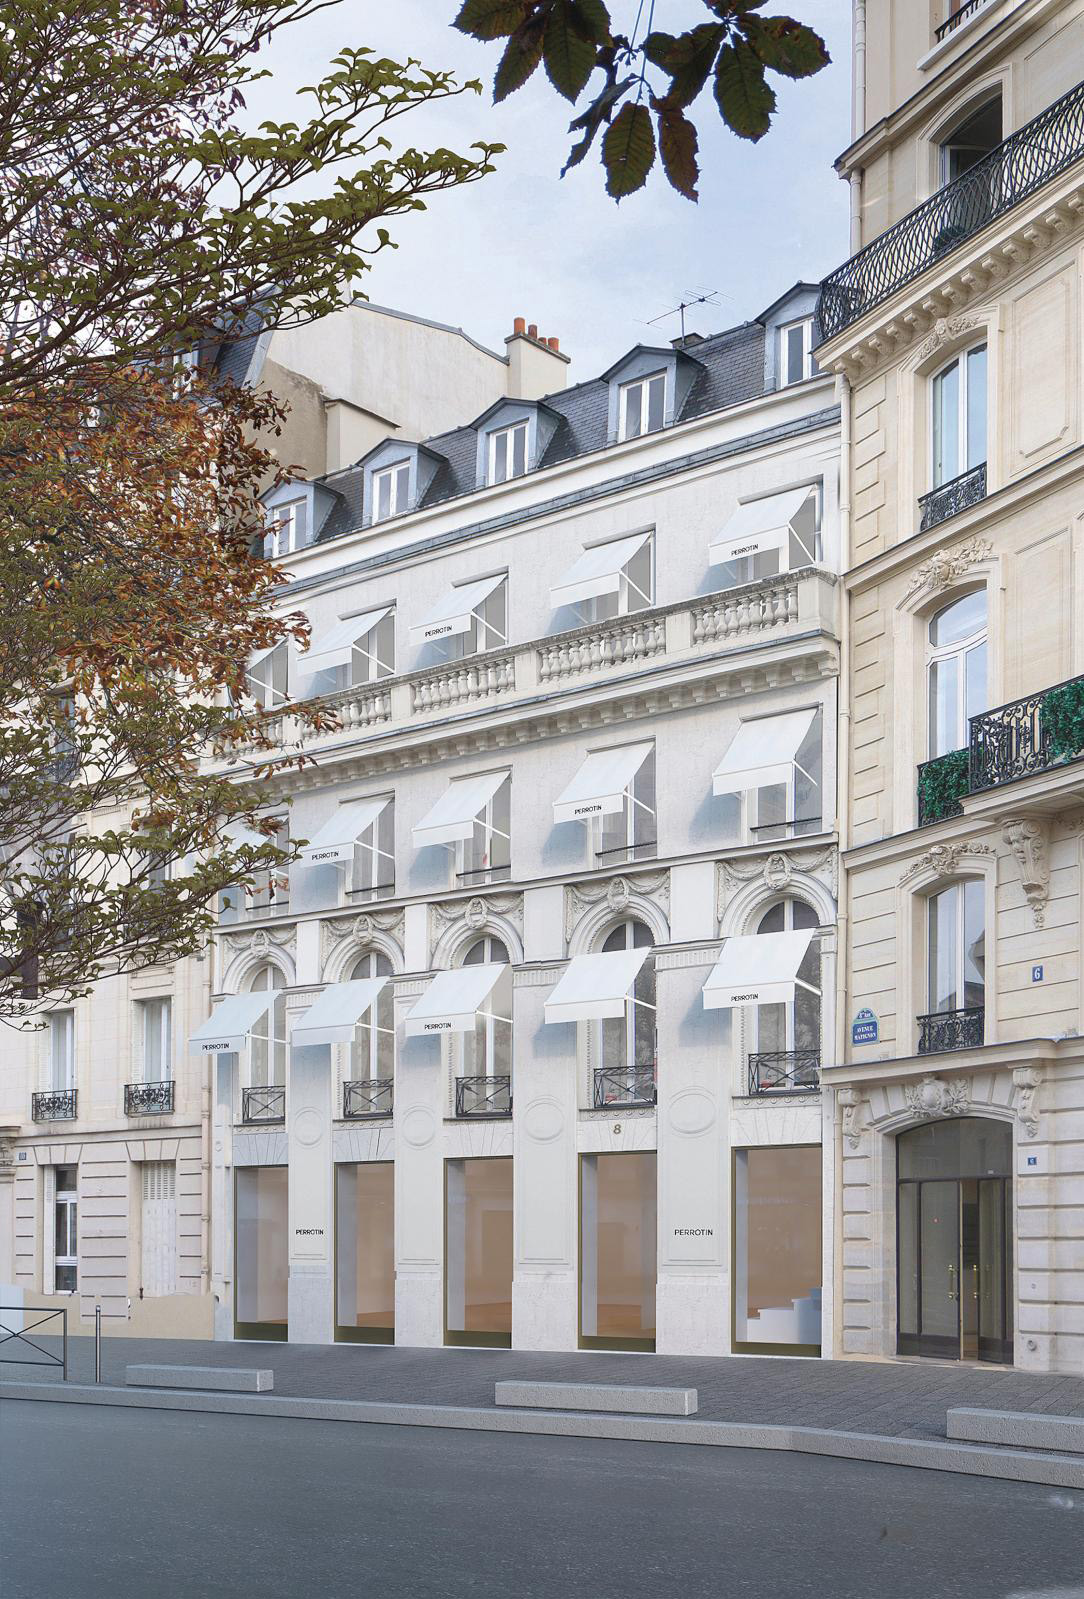 Emmanuel Perrotin's private mansion at 8 Avenue Matignon, which will be devoted to the secondary market. Photo: L'Atelier Senzu